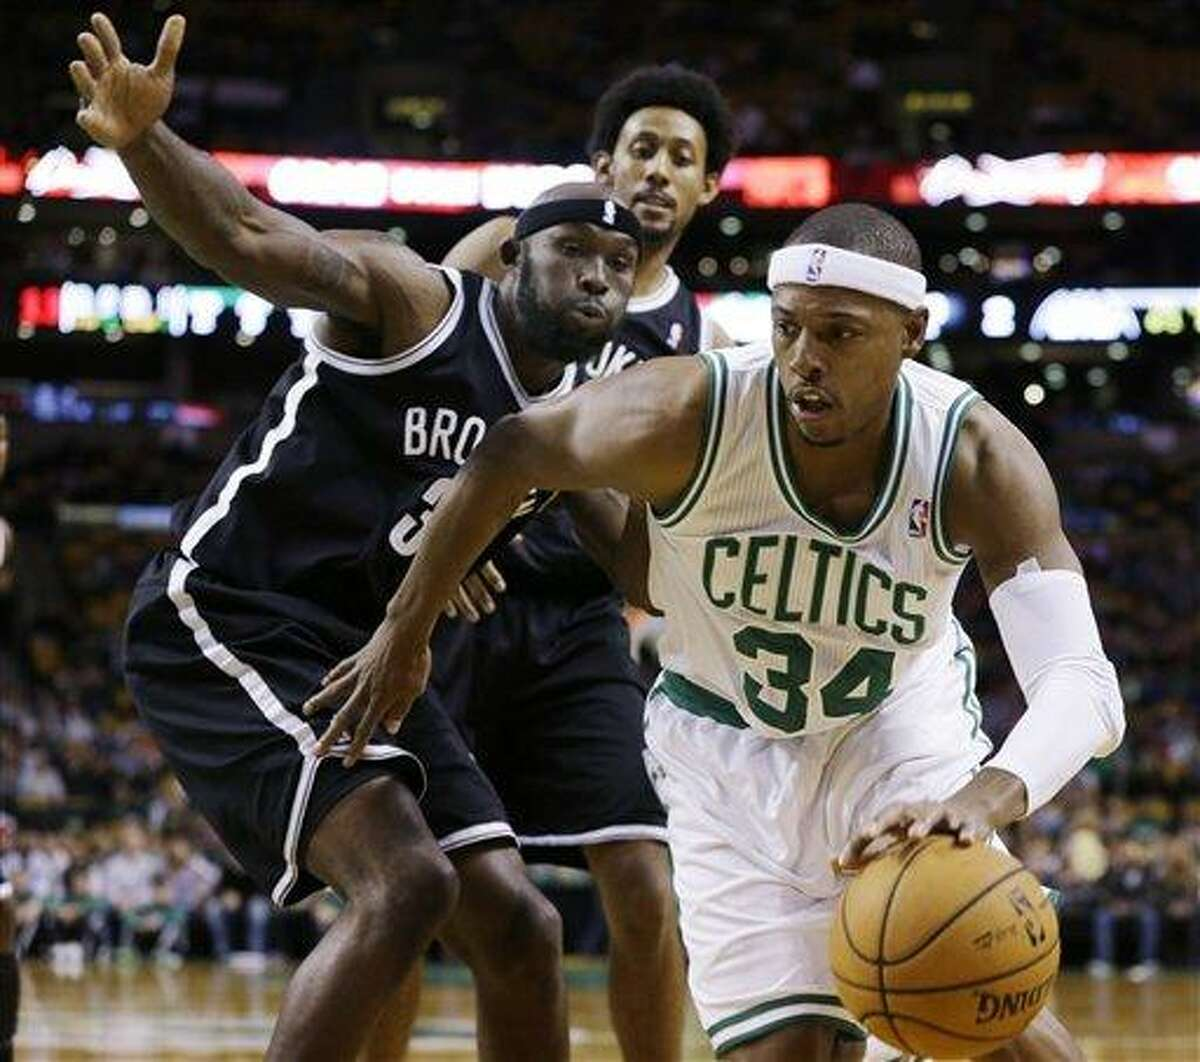 Boston Celtics' Paul Pierce (34) drives against Brooklyn Nets' Reggie Evans (30) as Josh Childress watches from behind during the first half of an NBA preseason basketball game in Boston, Tuesday Oct. 16, 2012. (AP Photo/Elise Amendola)